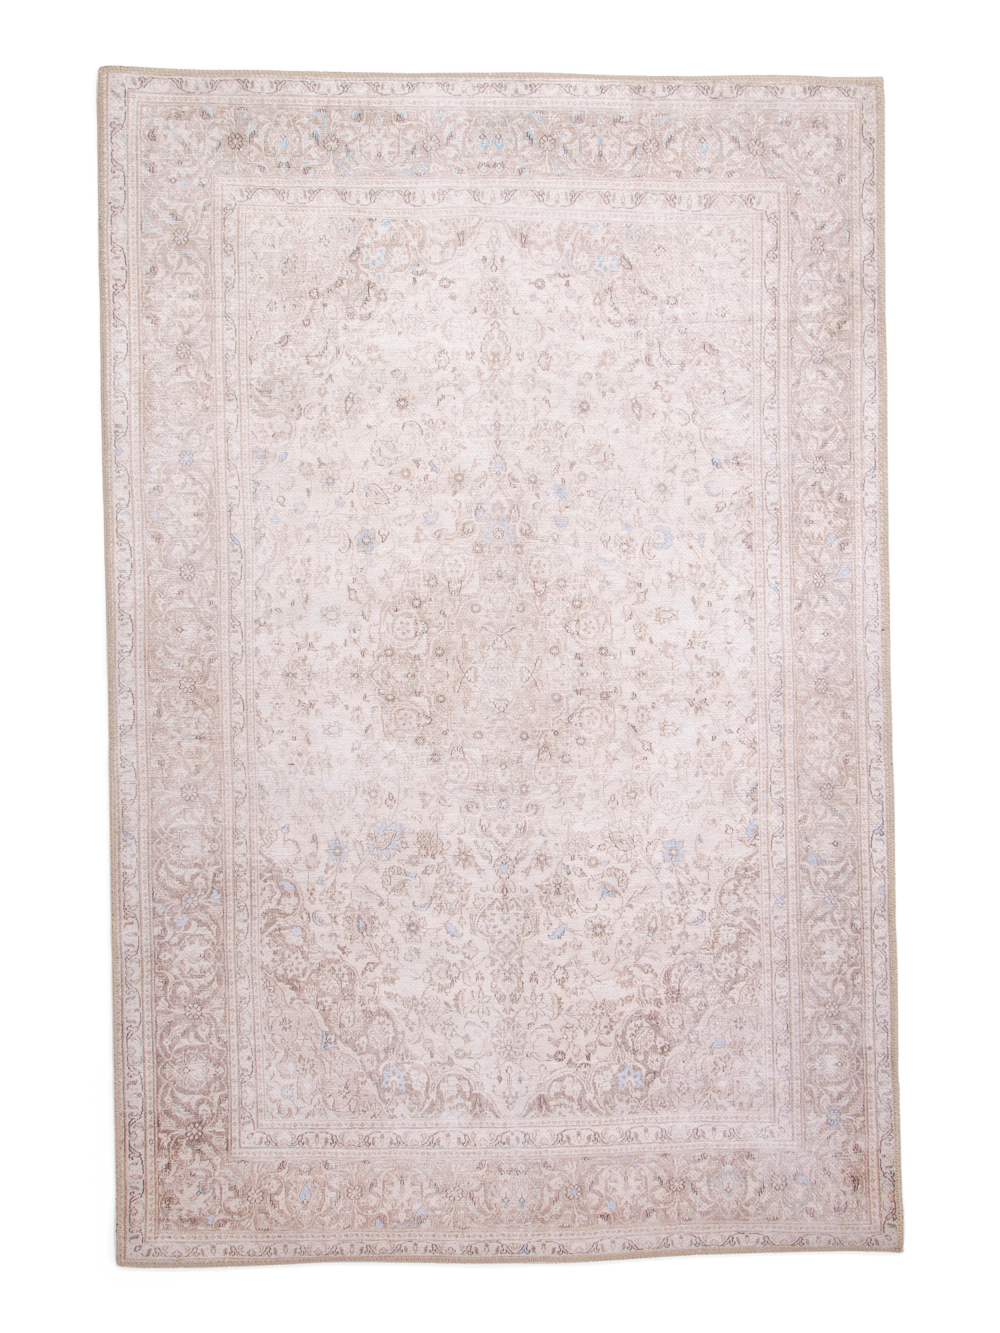 Made In Turkey Flat Weave Scatter Rug Home T J Maxx Flat Weave 5x7 Print Scatter Rugs [ 1333 x 1000 Pixel ]